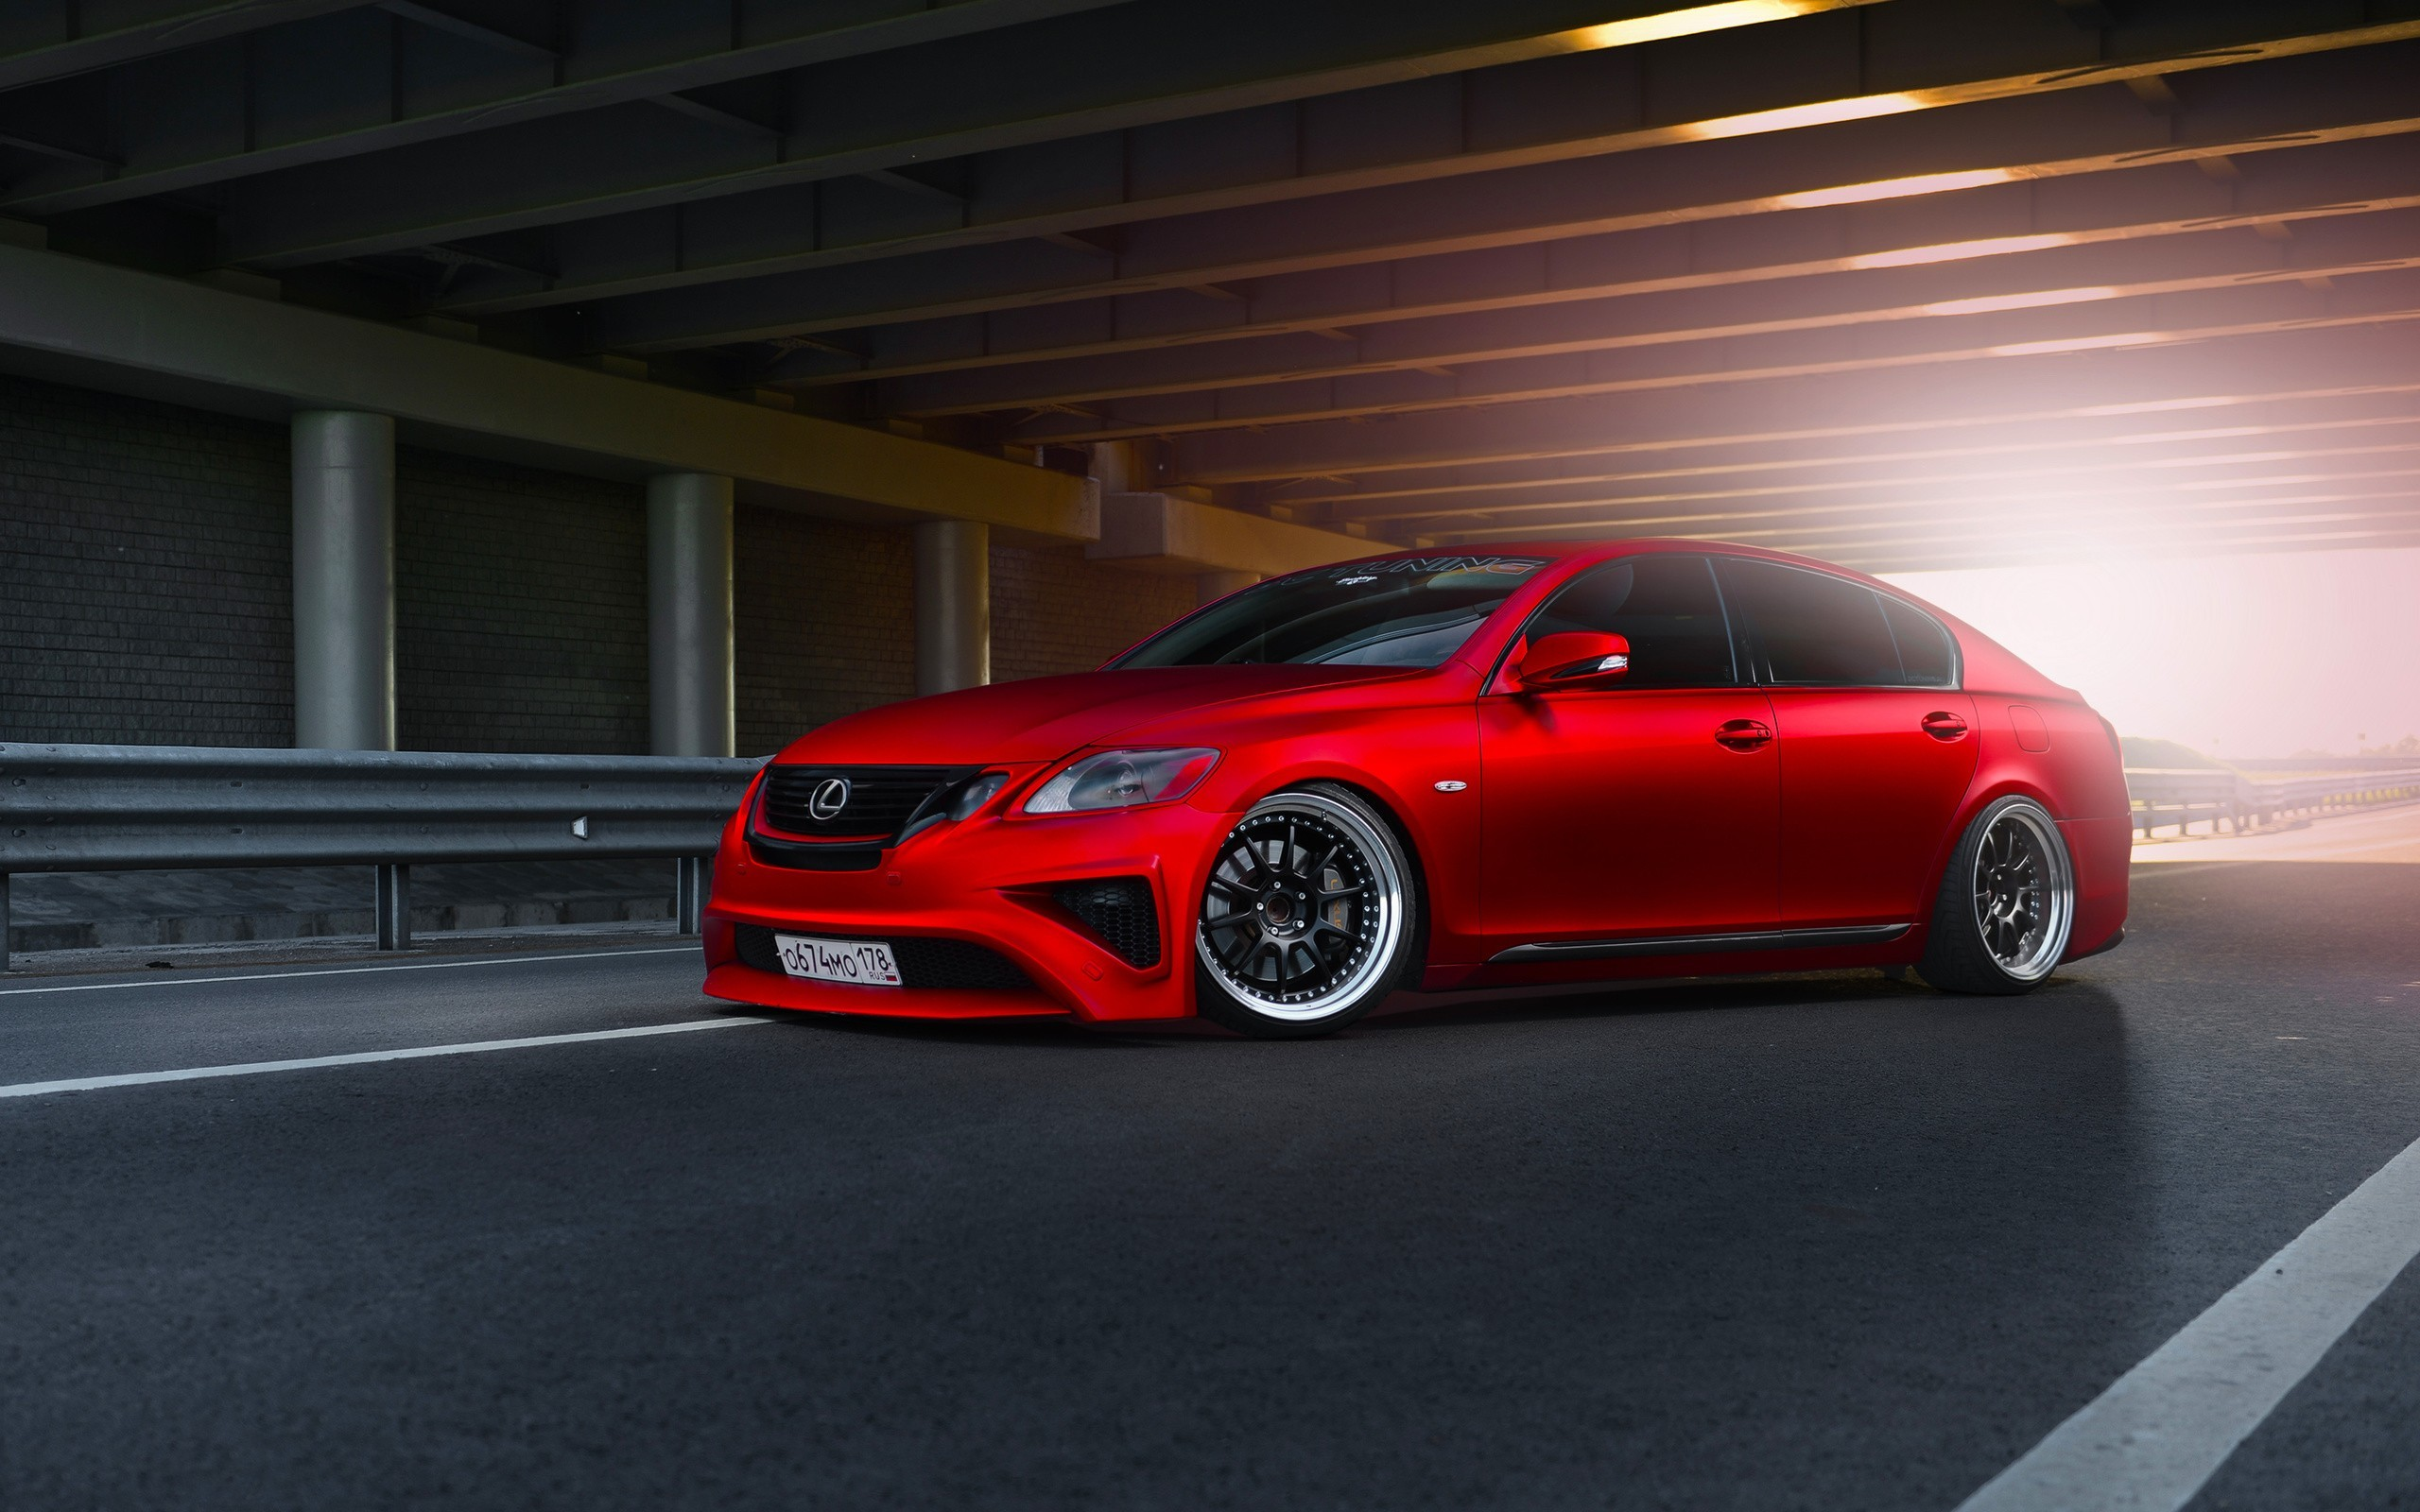 2560x1600 Lexus Red Car Wallpaper 00697